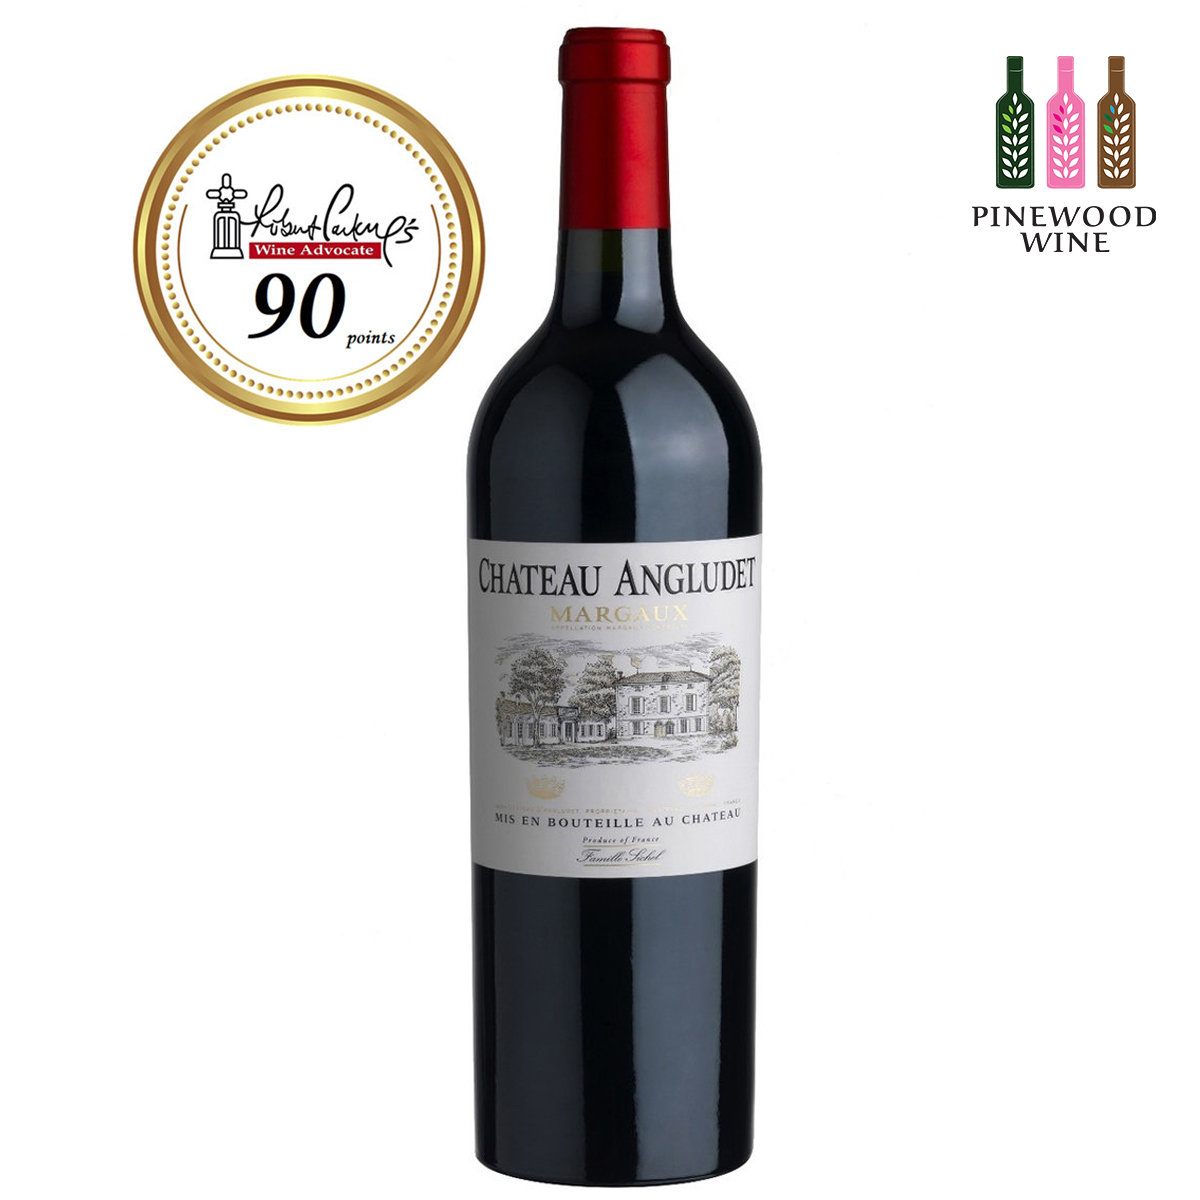 2009, RP 90 Margaux